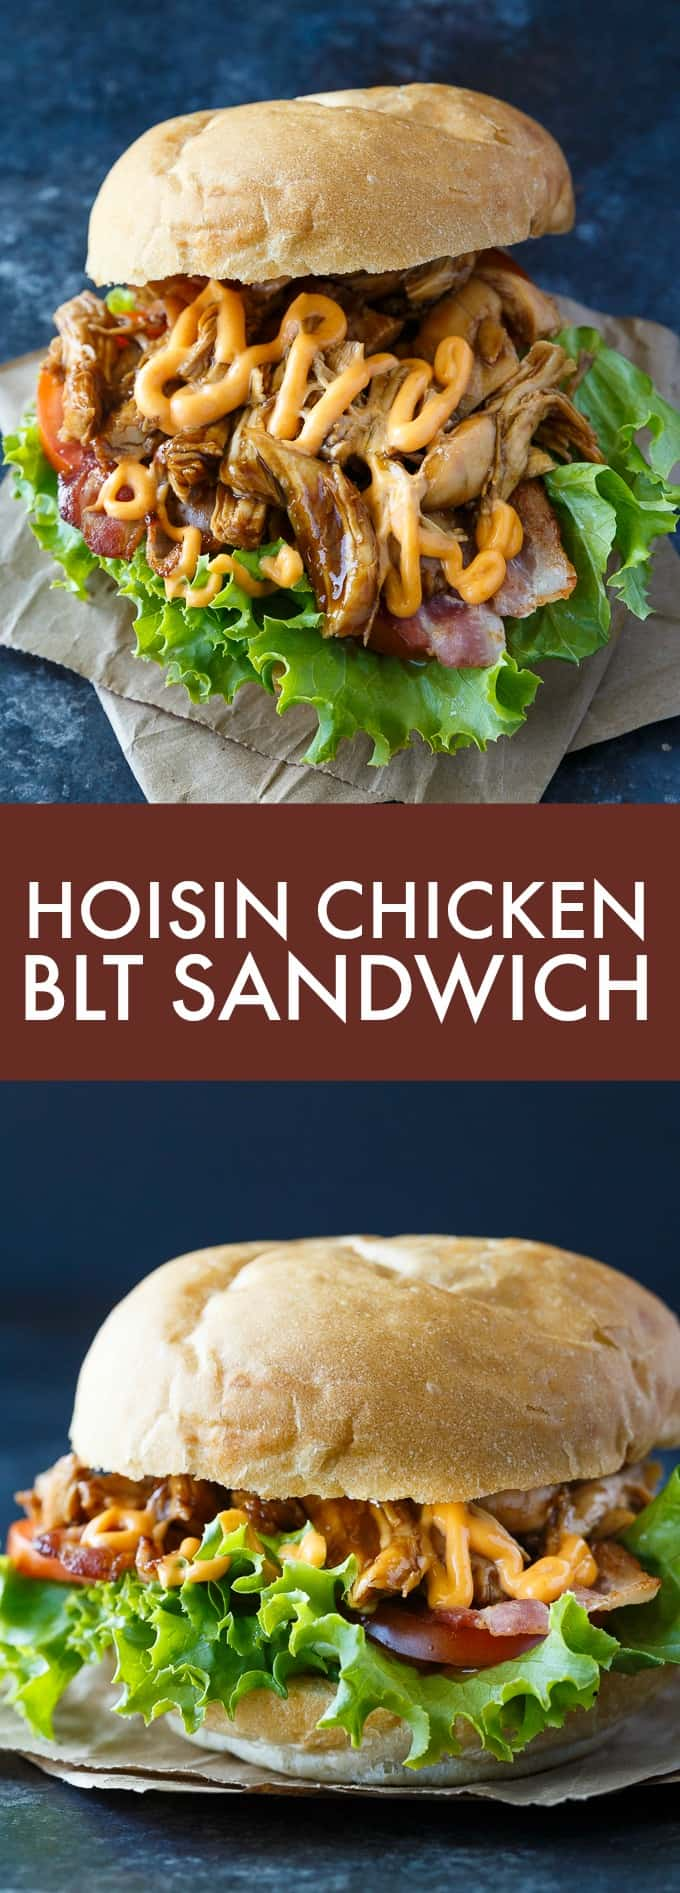 Hoisin Chicken BLT Sandwich - The perfect blend of sweet and spicy! This delicious sandwich recipe is one you'll make again and again.